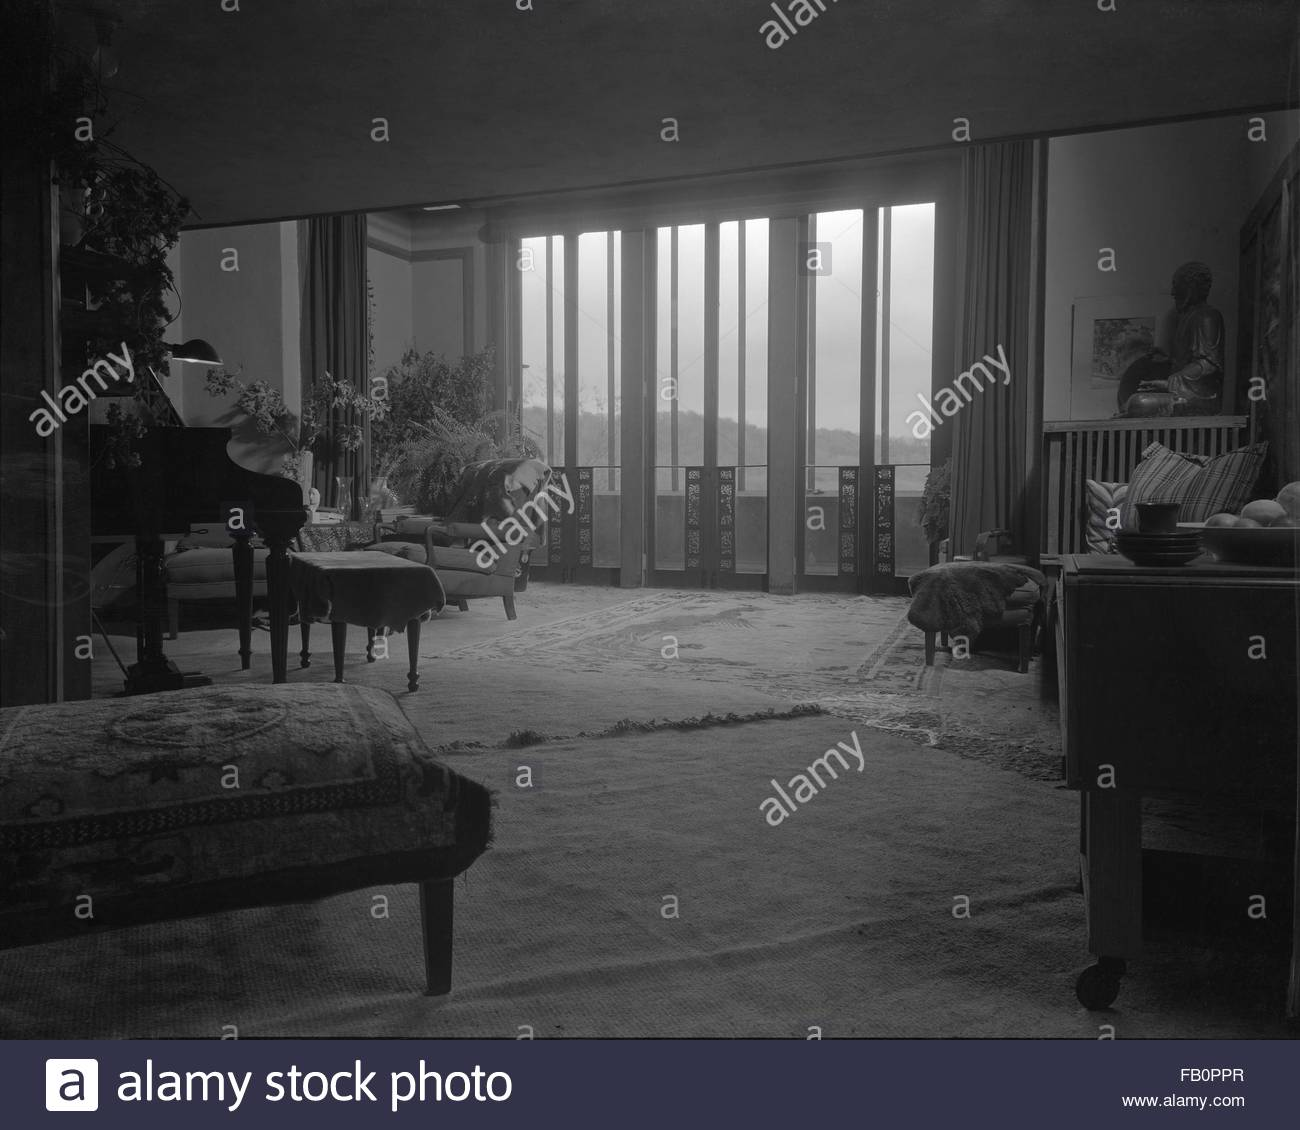 Taliesin East in Spring Green (Wis.), 1937 Dec. Interior living room. - Stock Image